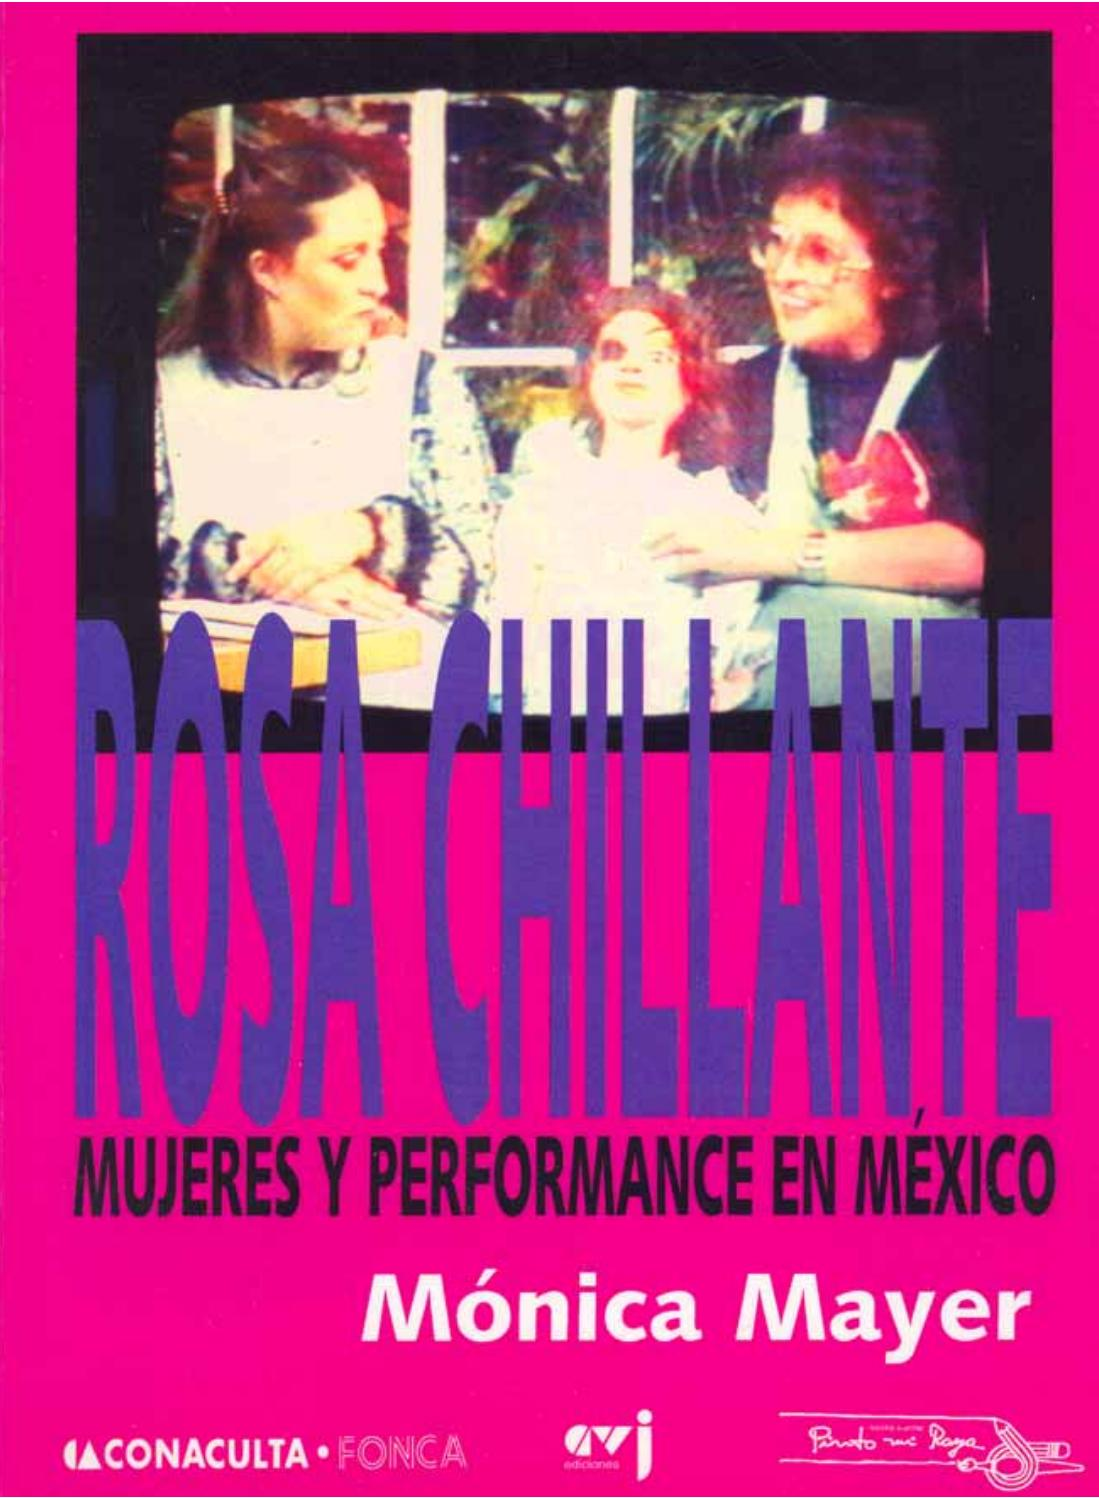 Monica Mayer, Rosa Chillante: Mujeres y performance en México 2004 ...